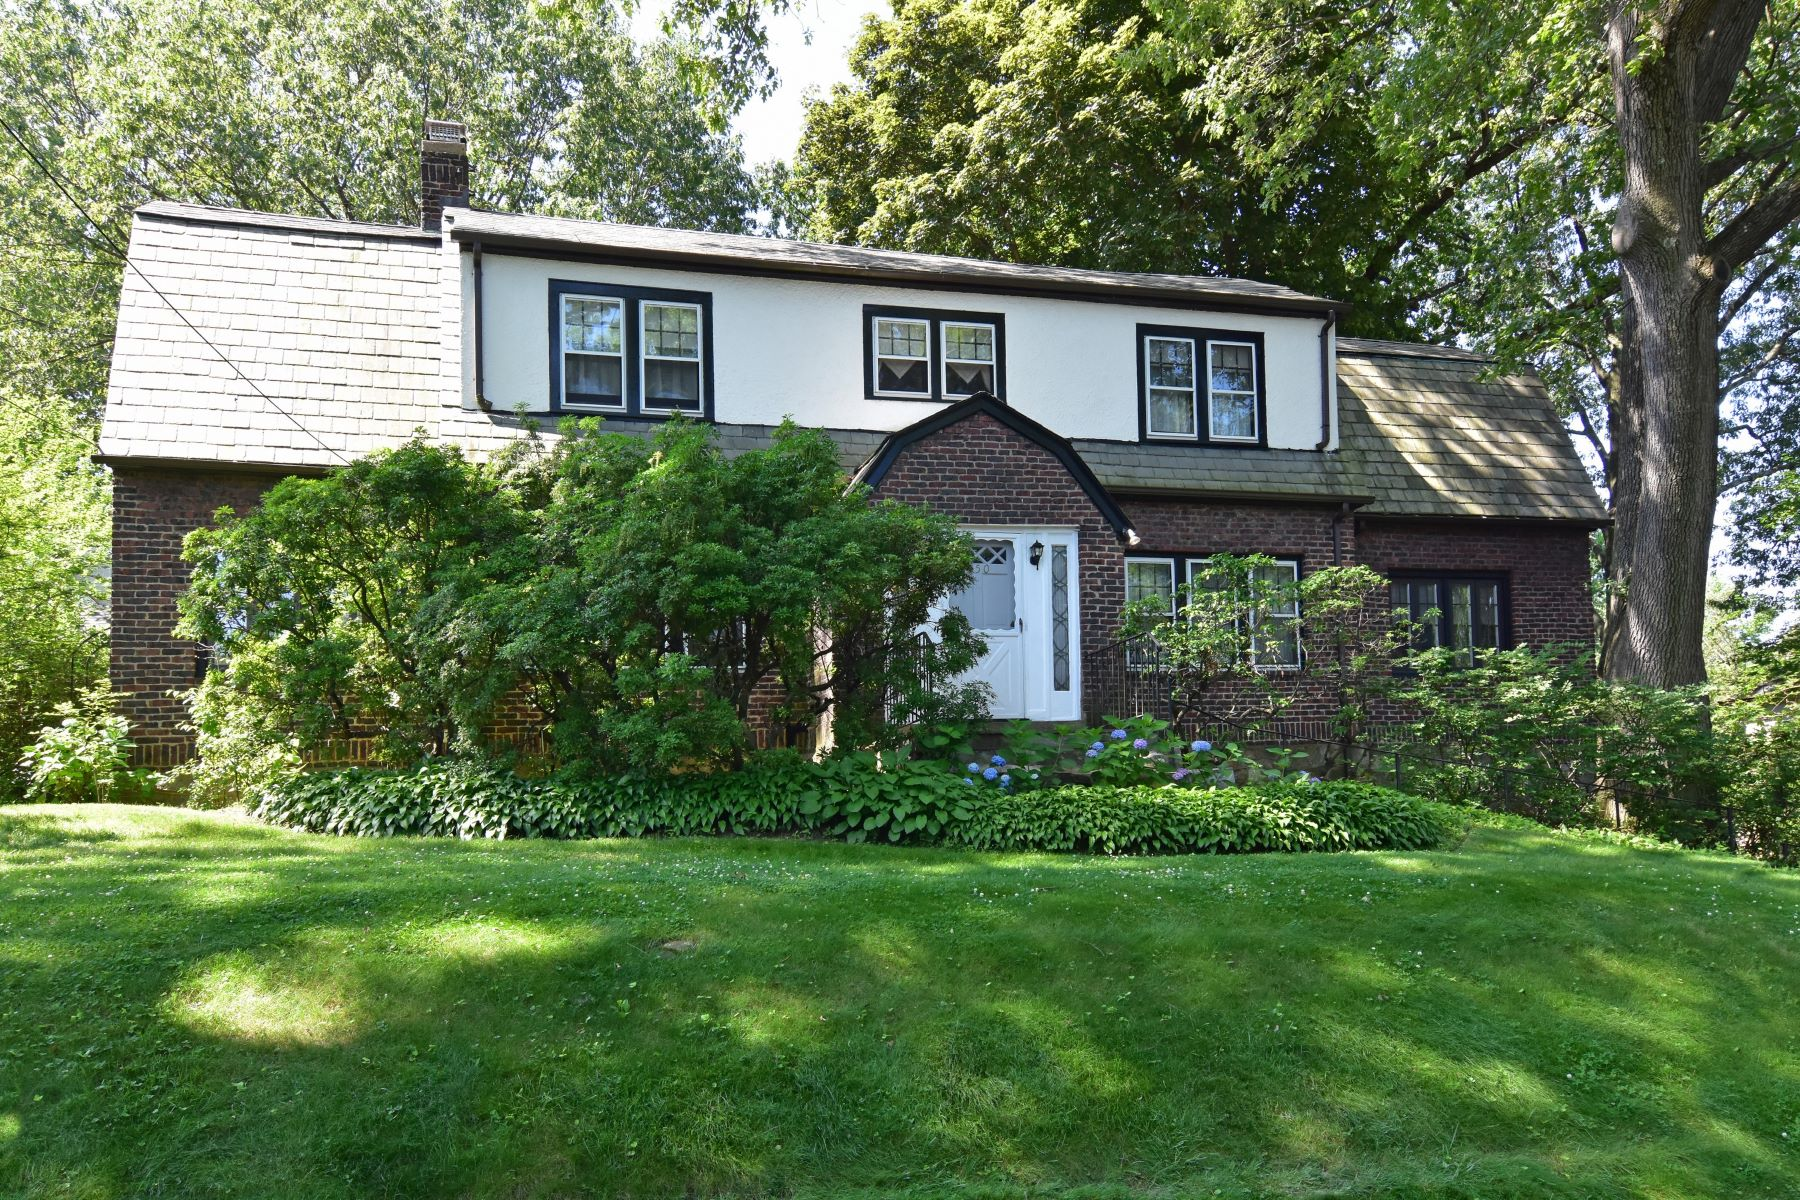 Single Family Homes for Sale at Welcome To 250 First Street 250 First Street Pelham, New York 10803 United States